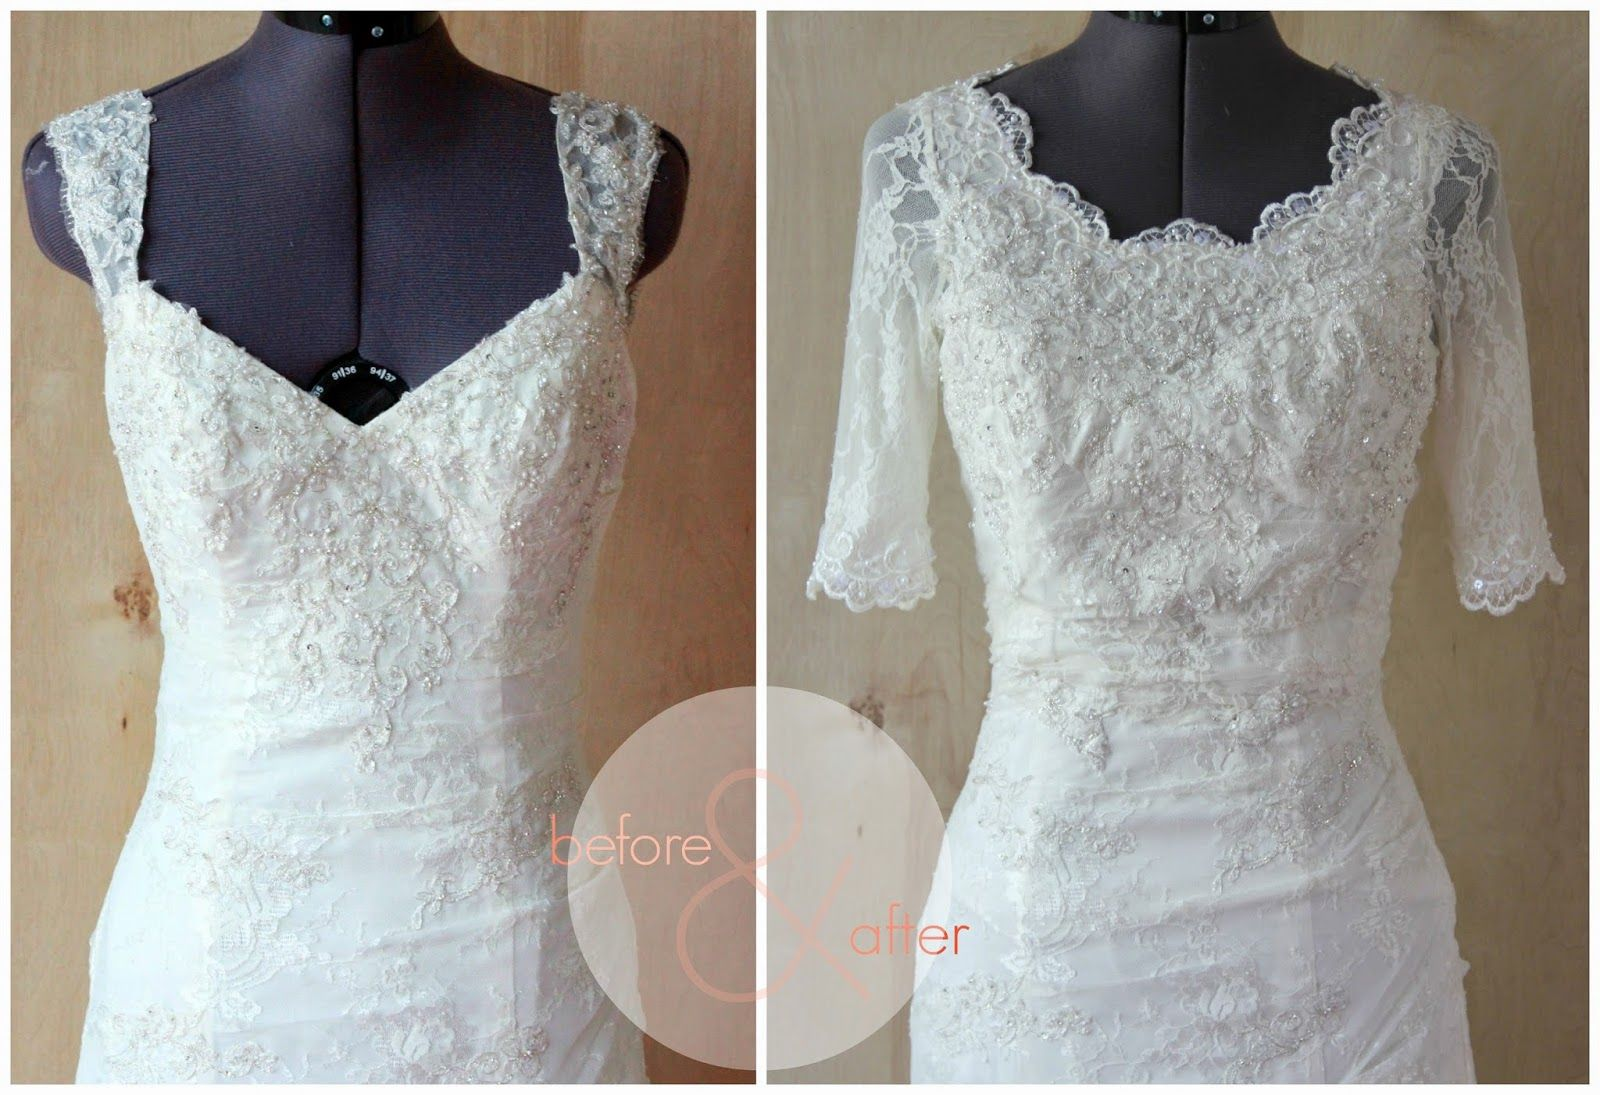 Behind The Scenes Of A Wedding Dress Alteration Diy Wedding